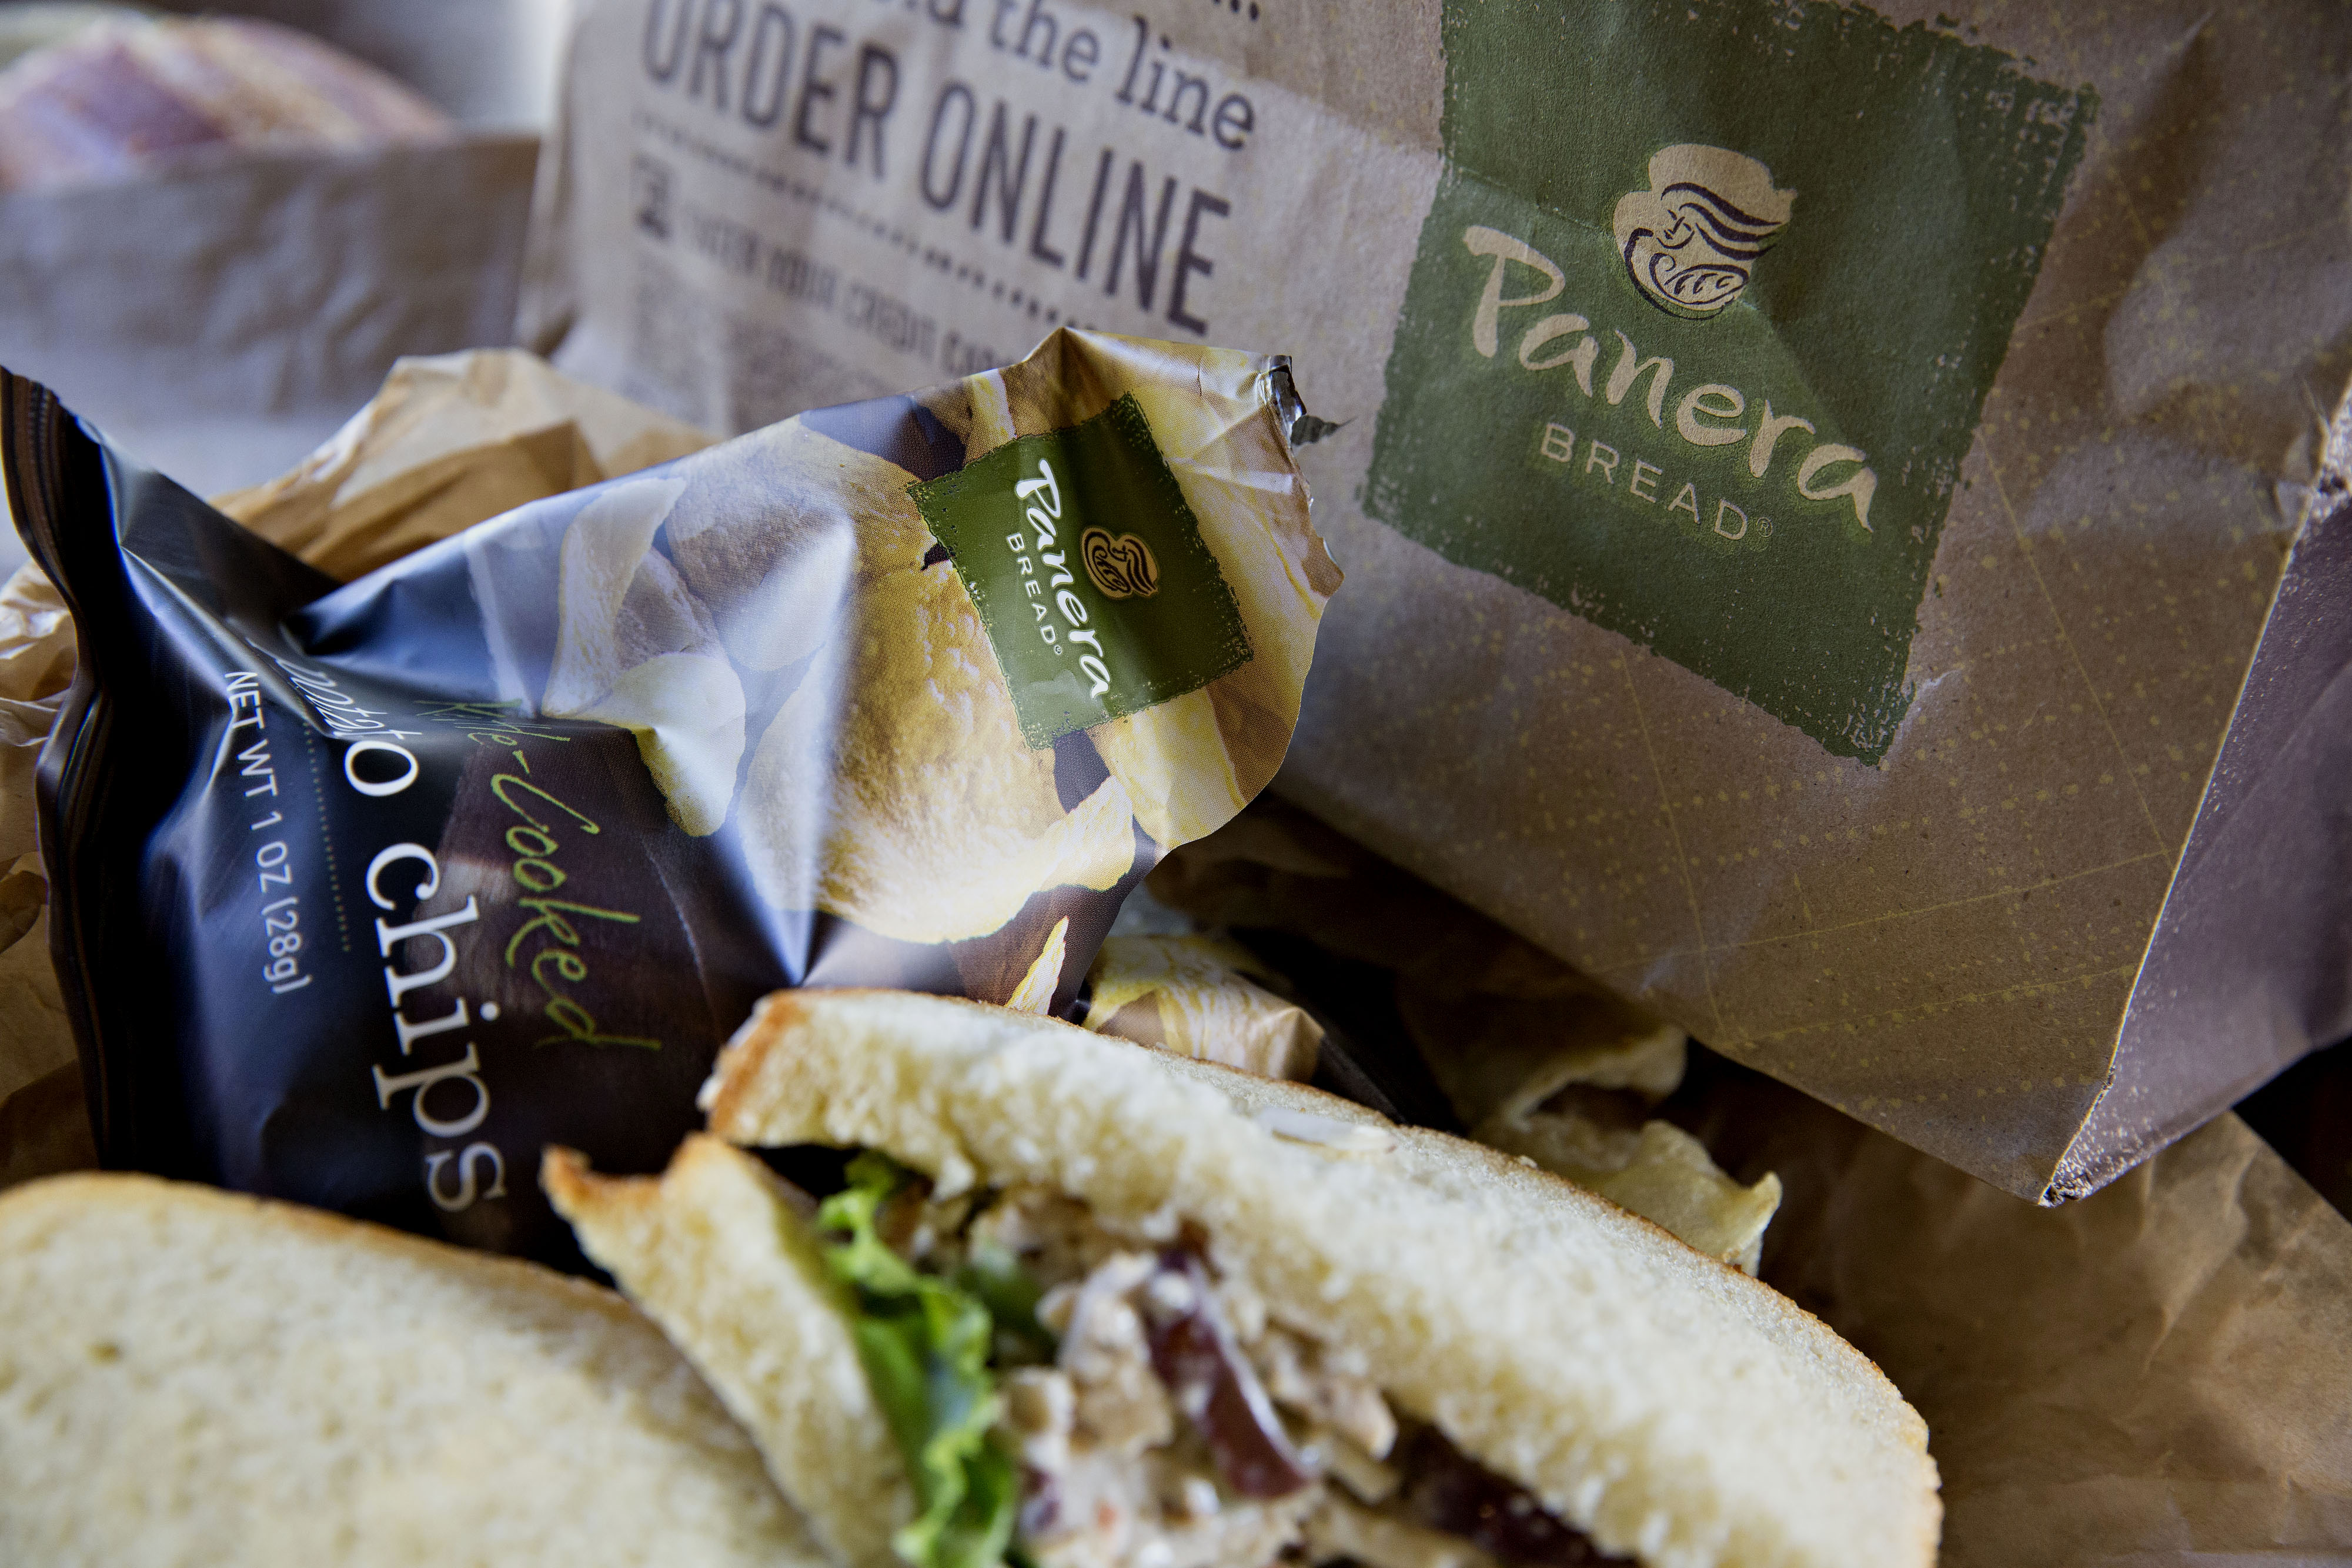 Panera Bread Co. To-Go Orders Ahead Of Earnings Figures